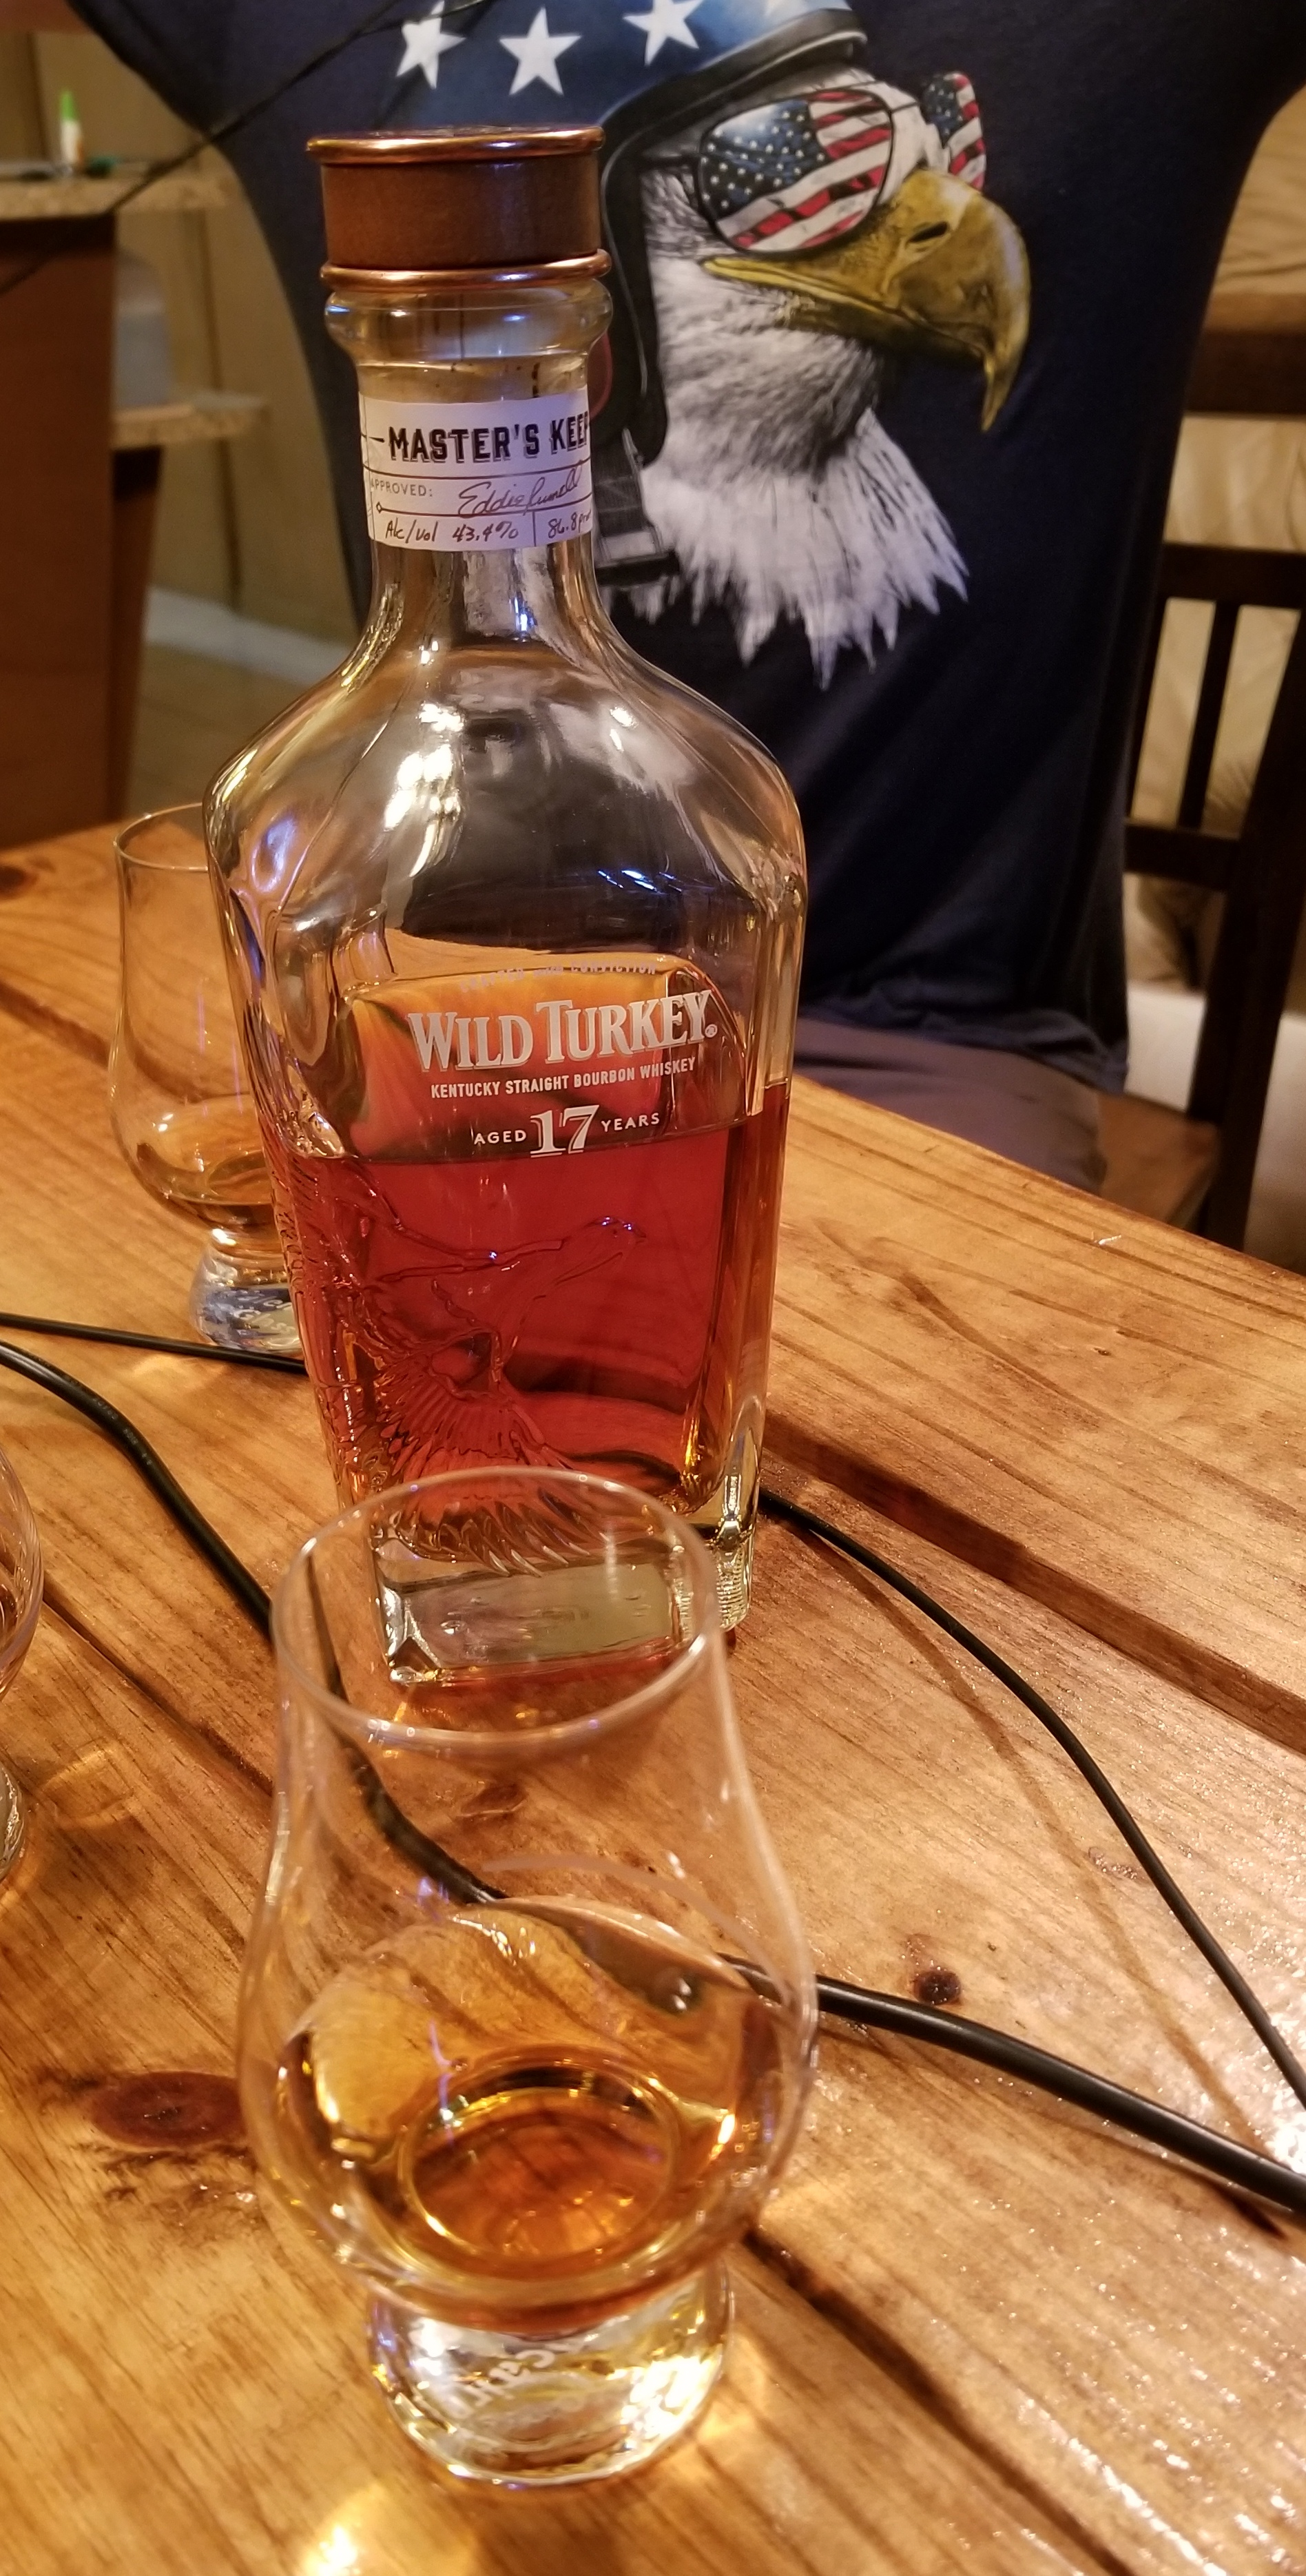 Episode the 13th - A whiskey review & stories from Mexico